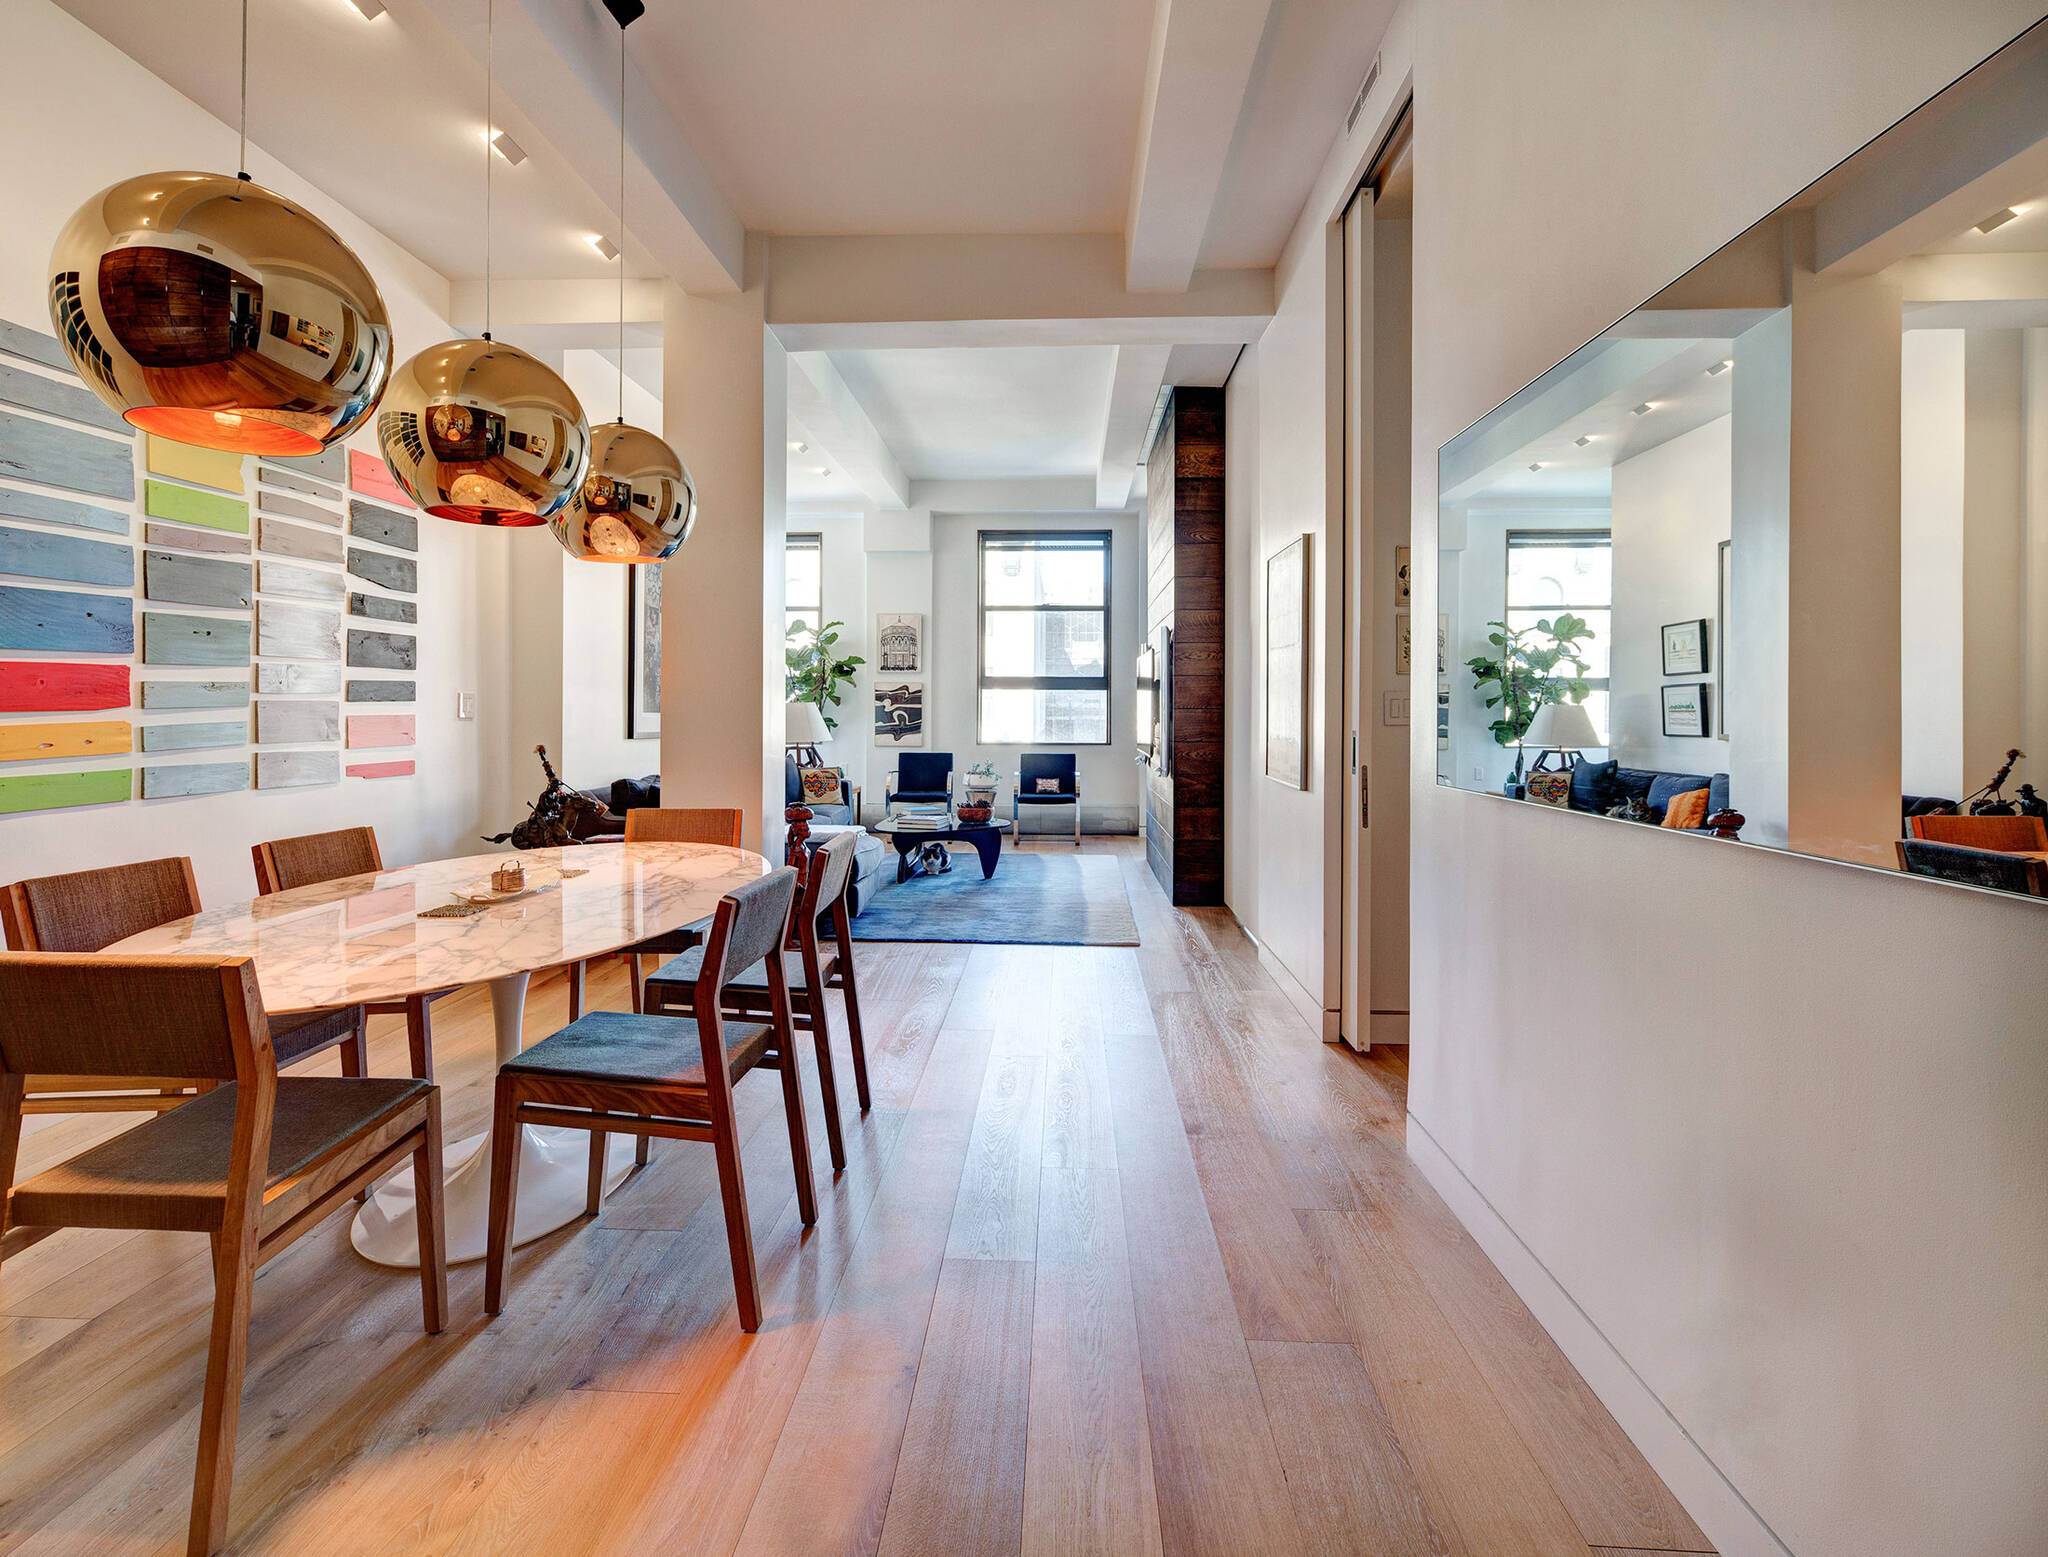 View of the dining room and living room from the entrance of the residence renovation project in the Chelsea Mews building on the Flatiron District in Manhattan, New York City designed by the architecture studio Danny Forster & Architecture